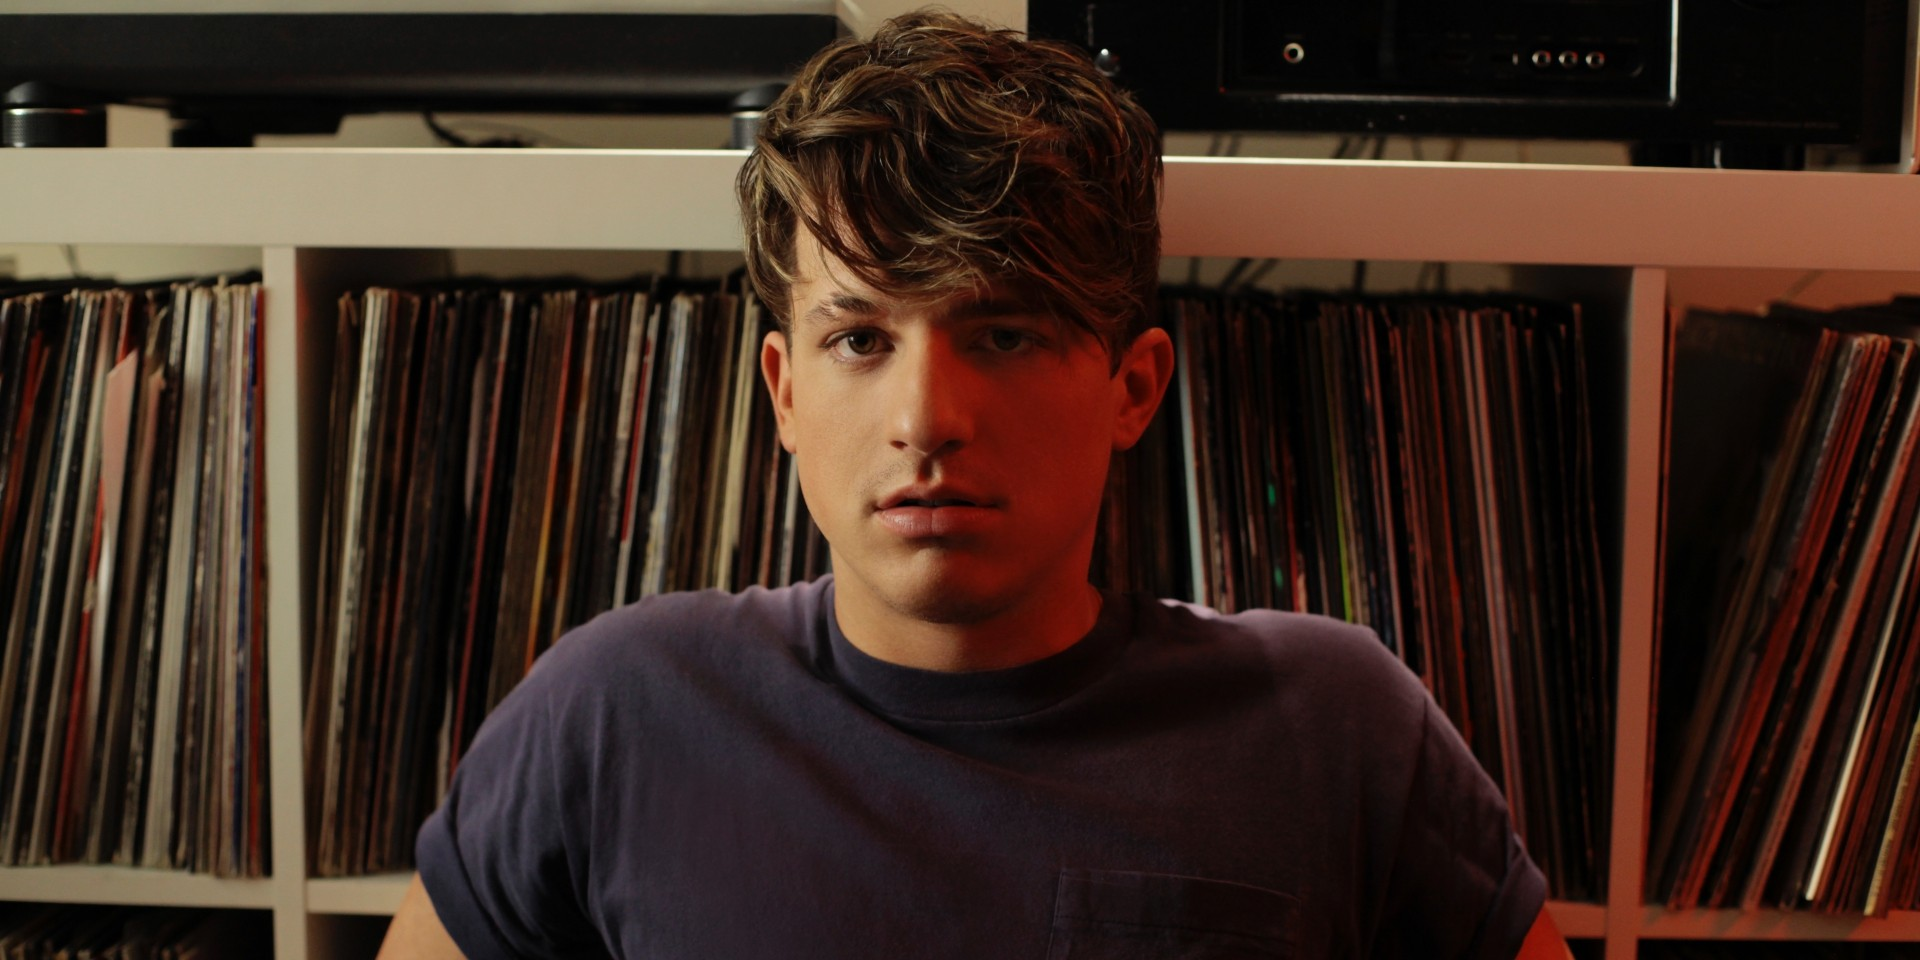 """Being able to play in Singapore for a sold out show is crazy"": An interview with Charlie Puth"